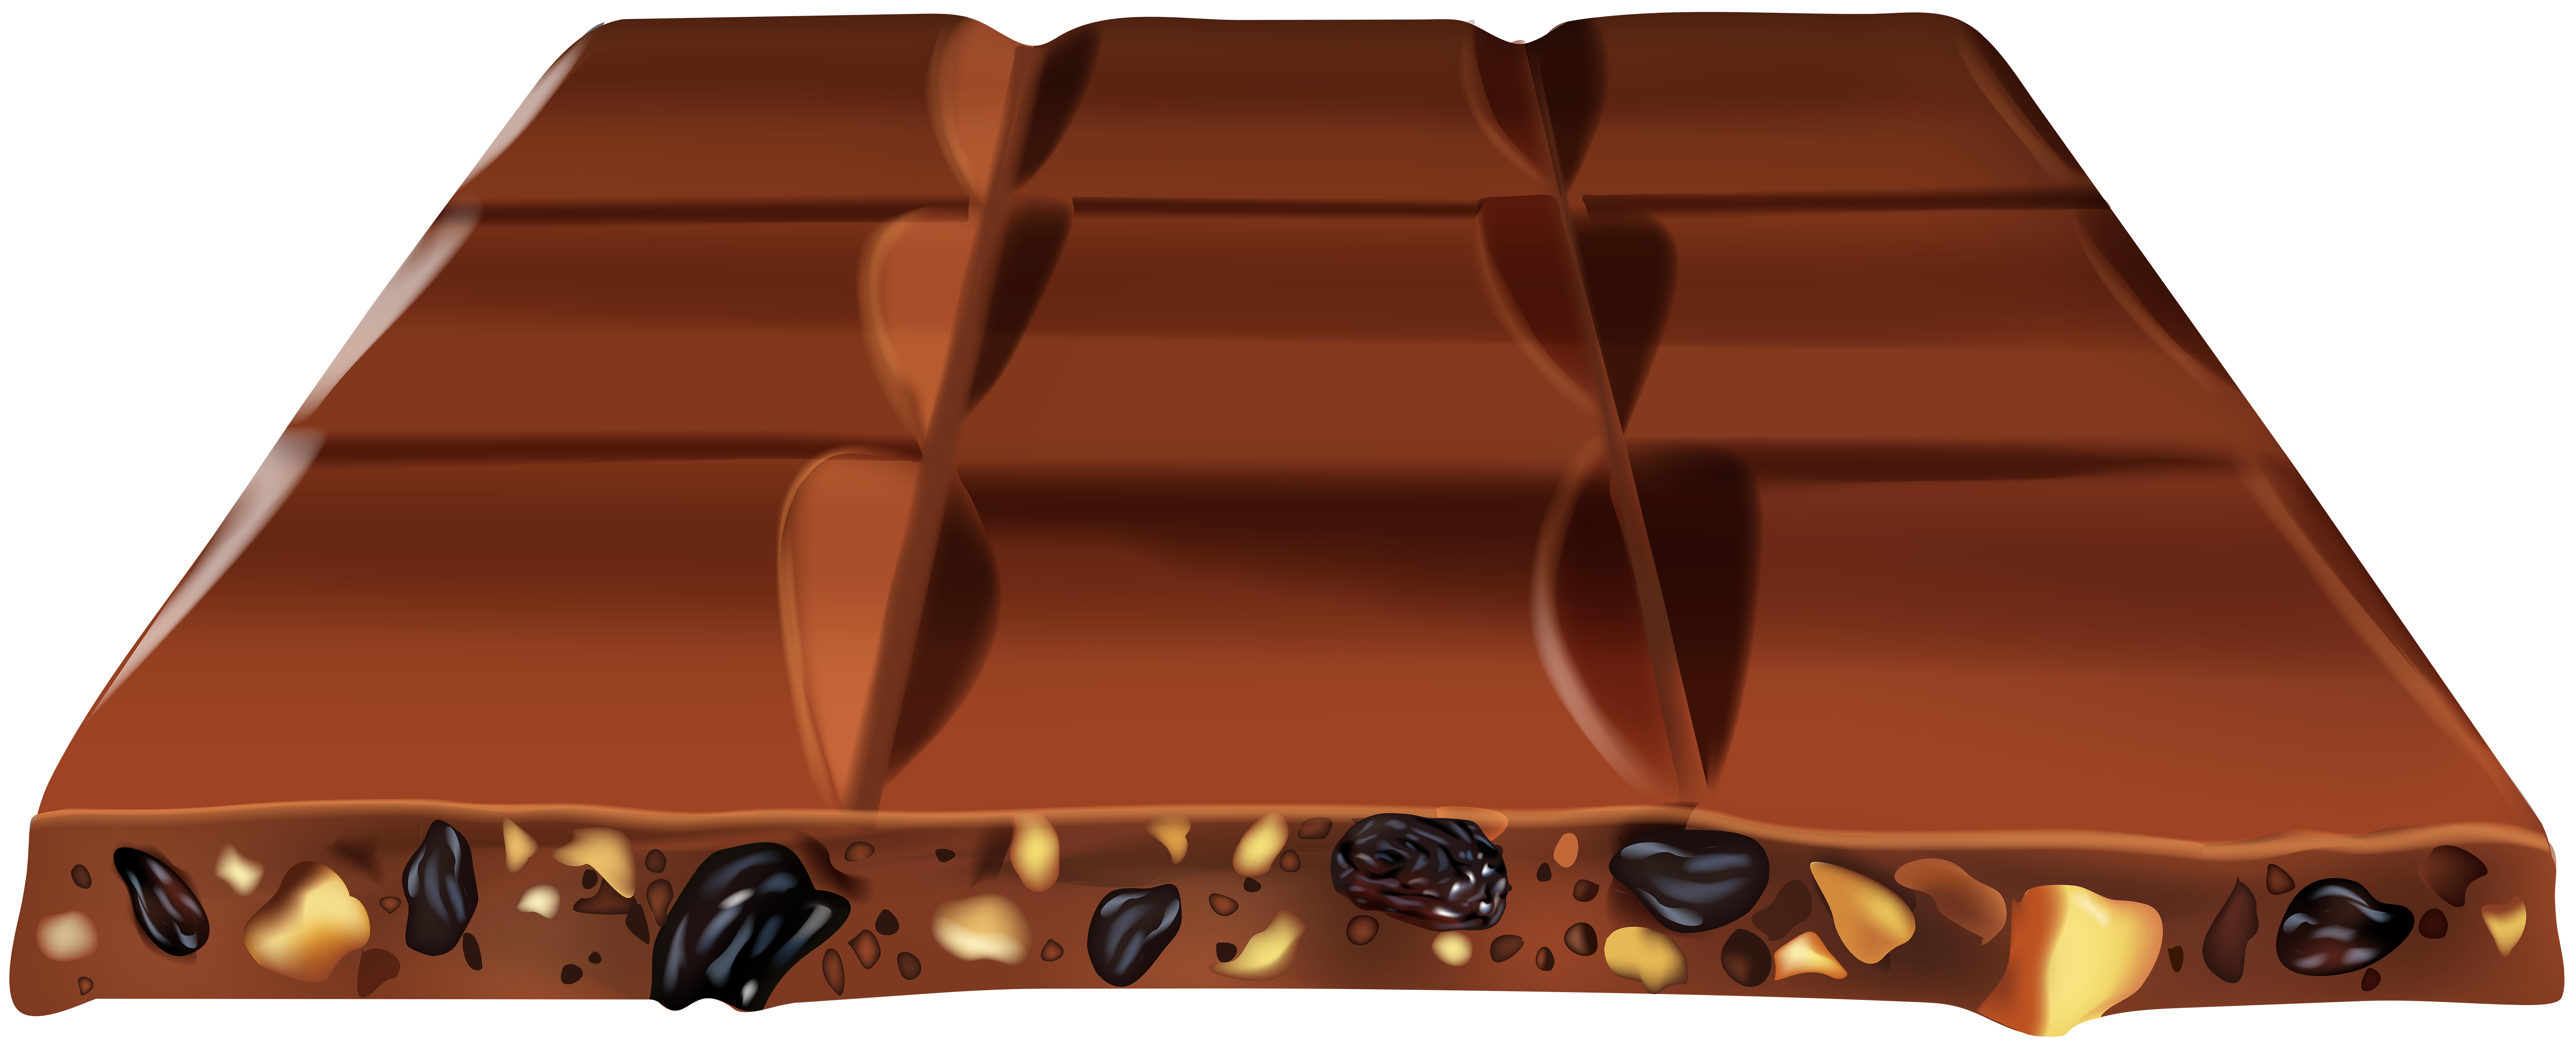 Chocolate with Nuts Transparent Clip Art Image.